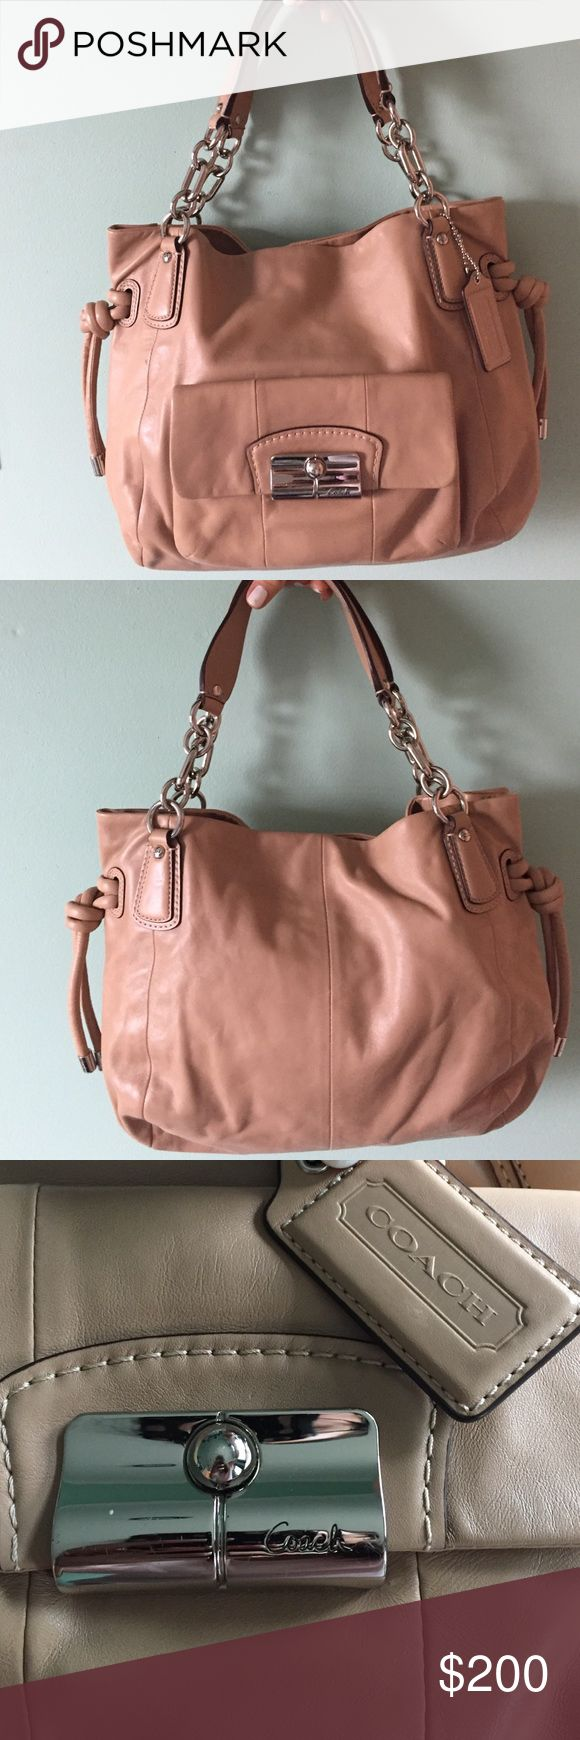 Coach Leather Bag Used only once! Kept in perfect condition and no damage to the bottom of the bag. The Leather is very soft and high quality. Purchased from a coach shop in LA. Interior is in great condition as well. This is truly a beautiful piece that can complete any outfit. All zippers and locks work perfectly. Comes with original Coach dust bag. No returns so please be sure :) Coach Bags Shoulder Bags